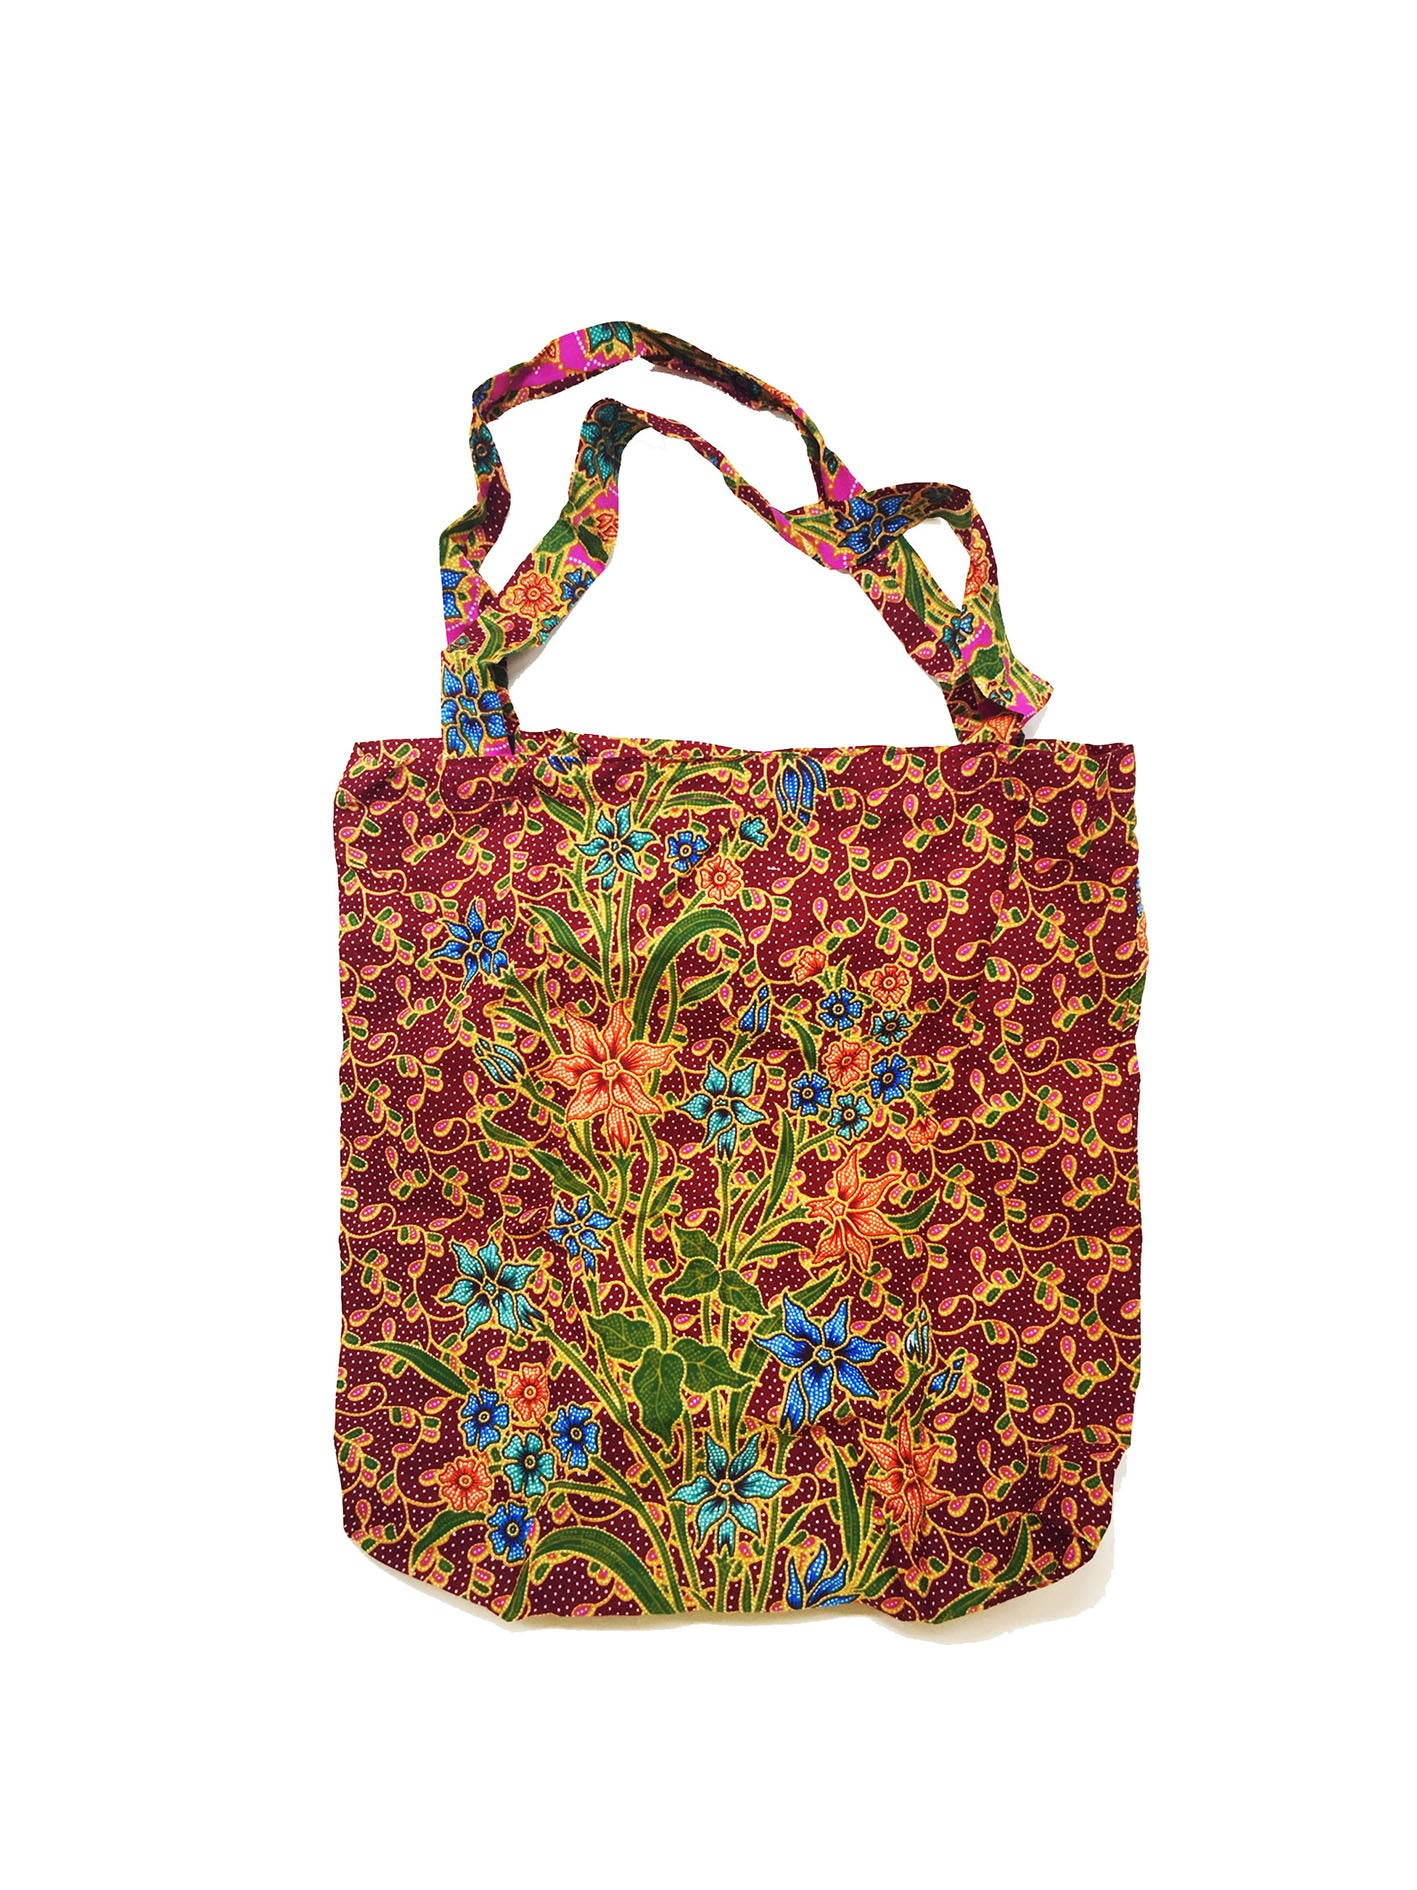 CWO Foldable Batik Shopping Bag (Maroon & Purple)